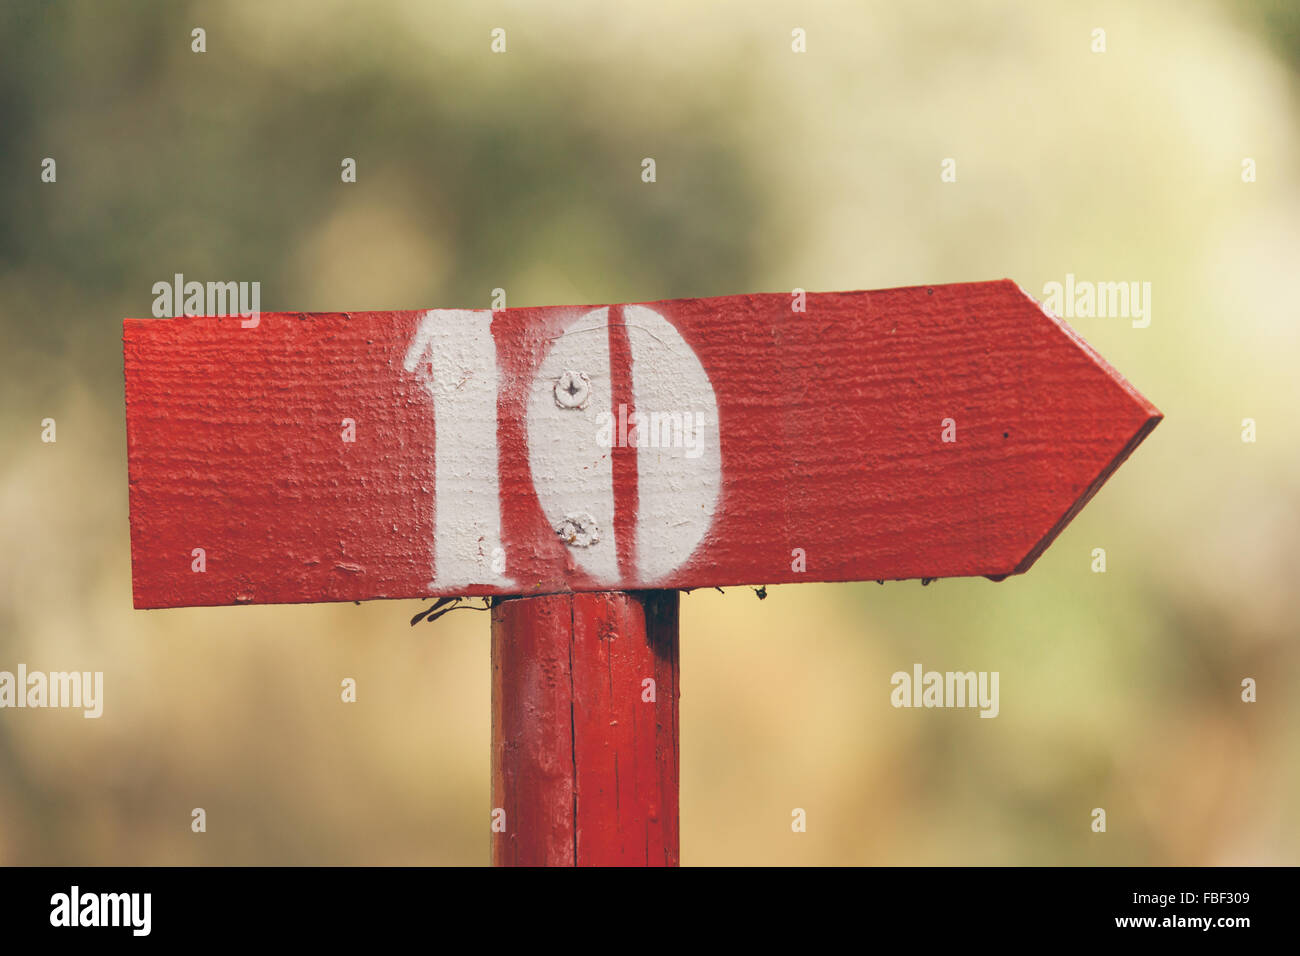 Close-Up Of Directional Sign With Number 10 - Stock Image